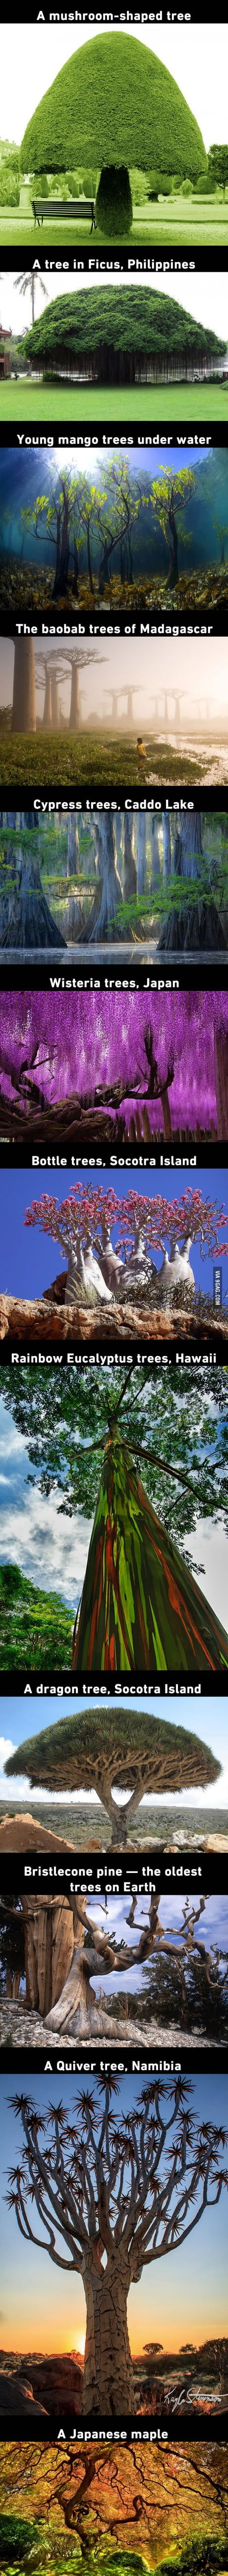 12 Beautiful Trees That You'd Thought They Grow On Pandora From Avatar #howtogrowplants